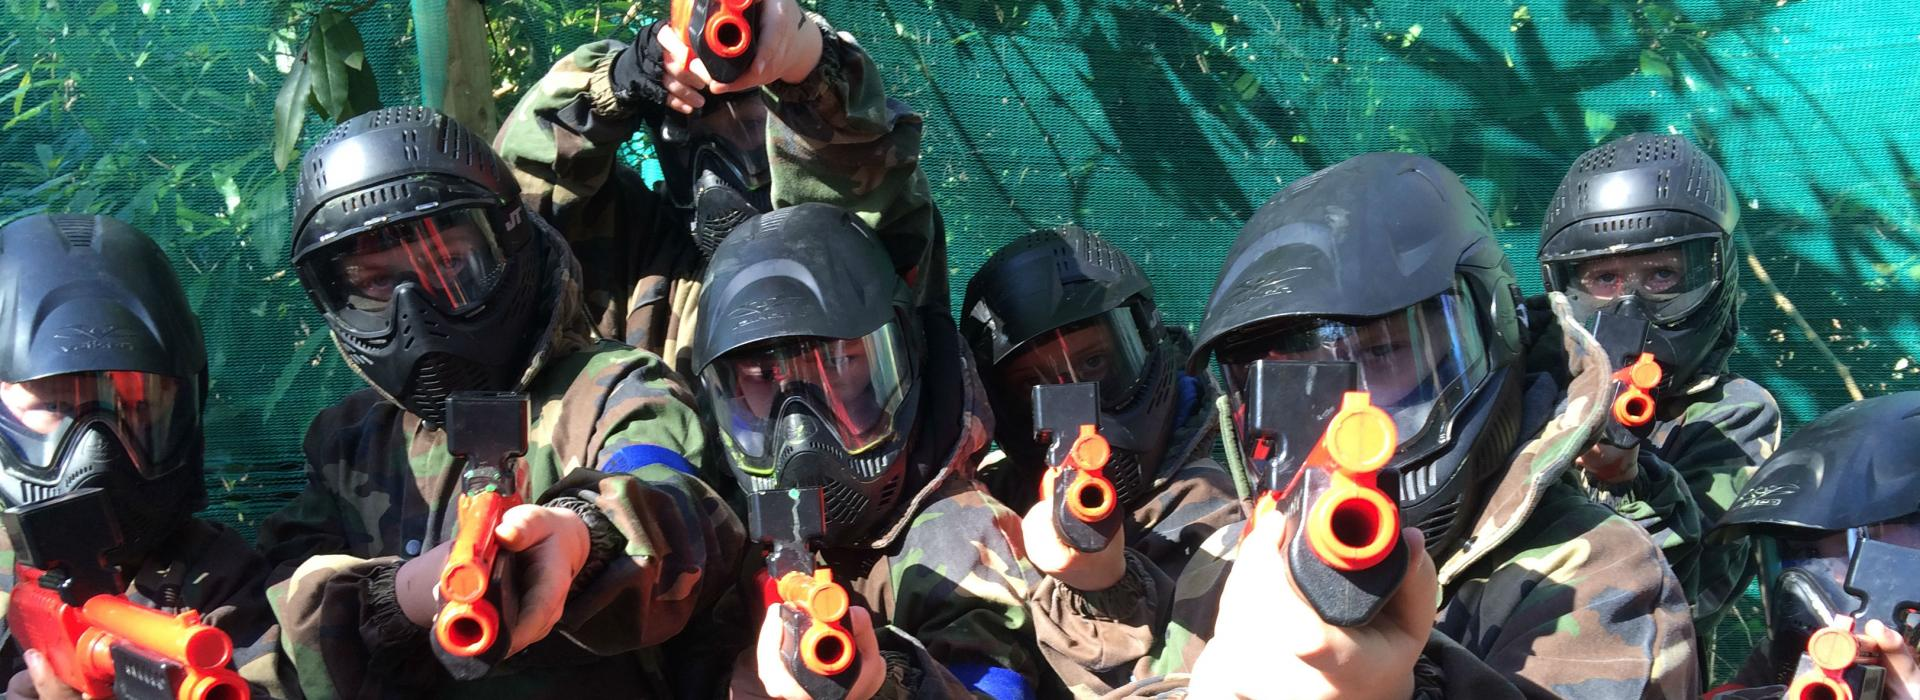 splatgun paintball north devon and somerset family activity